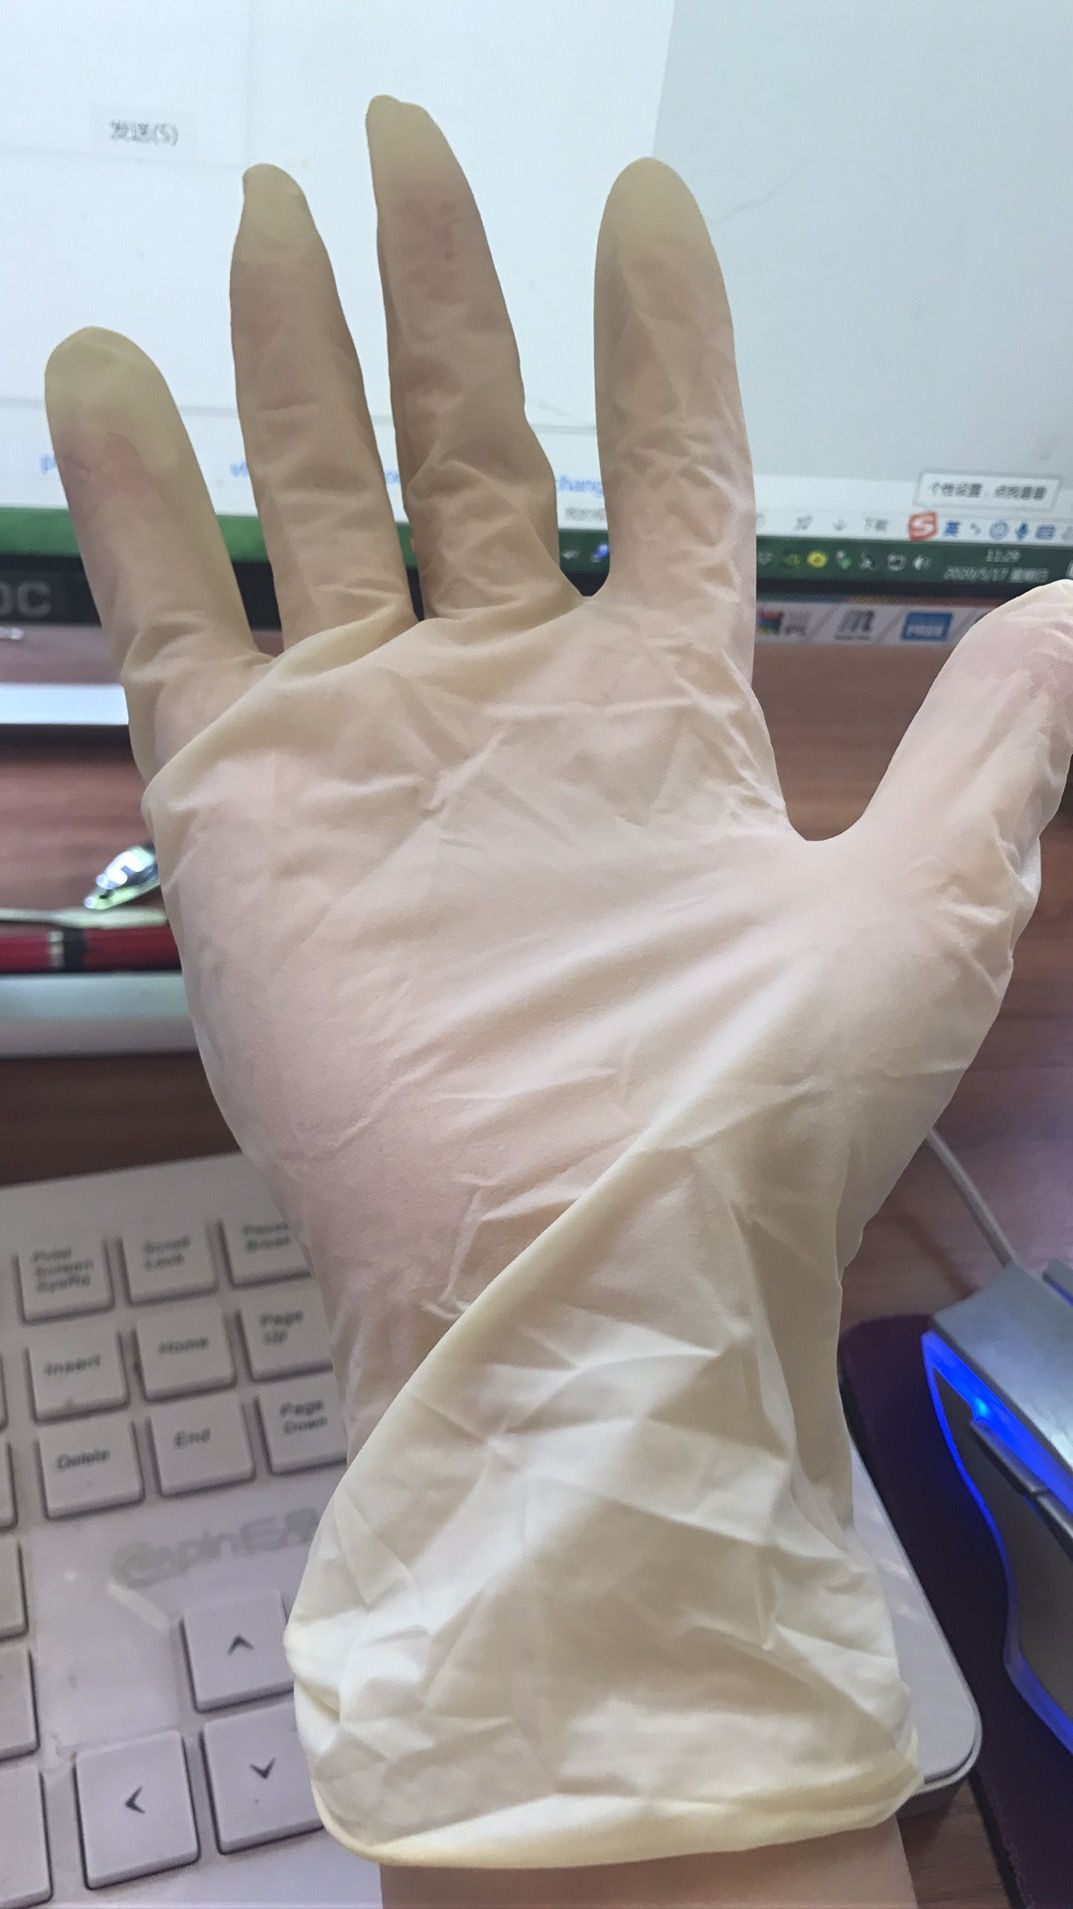 Safety gloves, Latex gloves